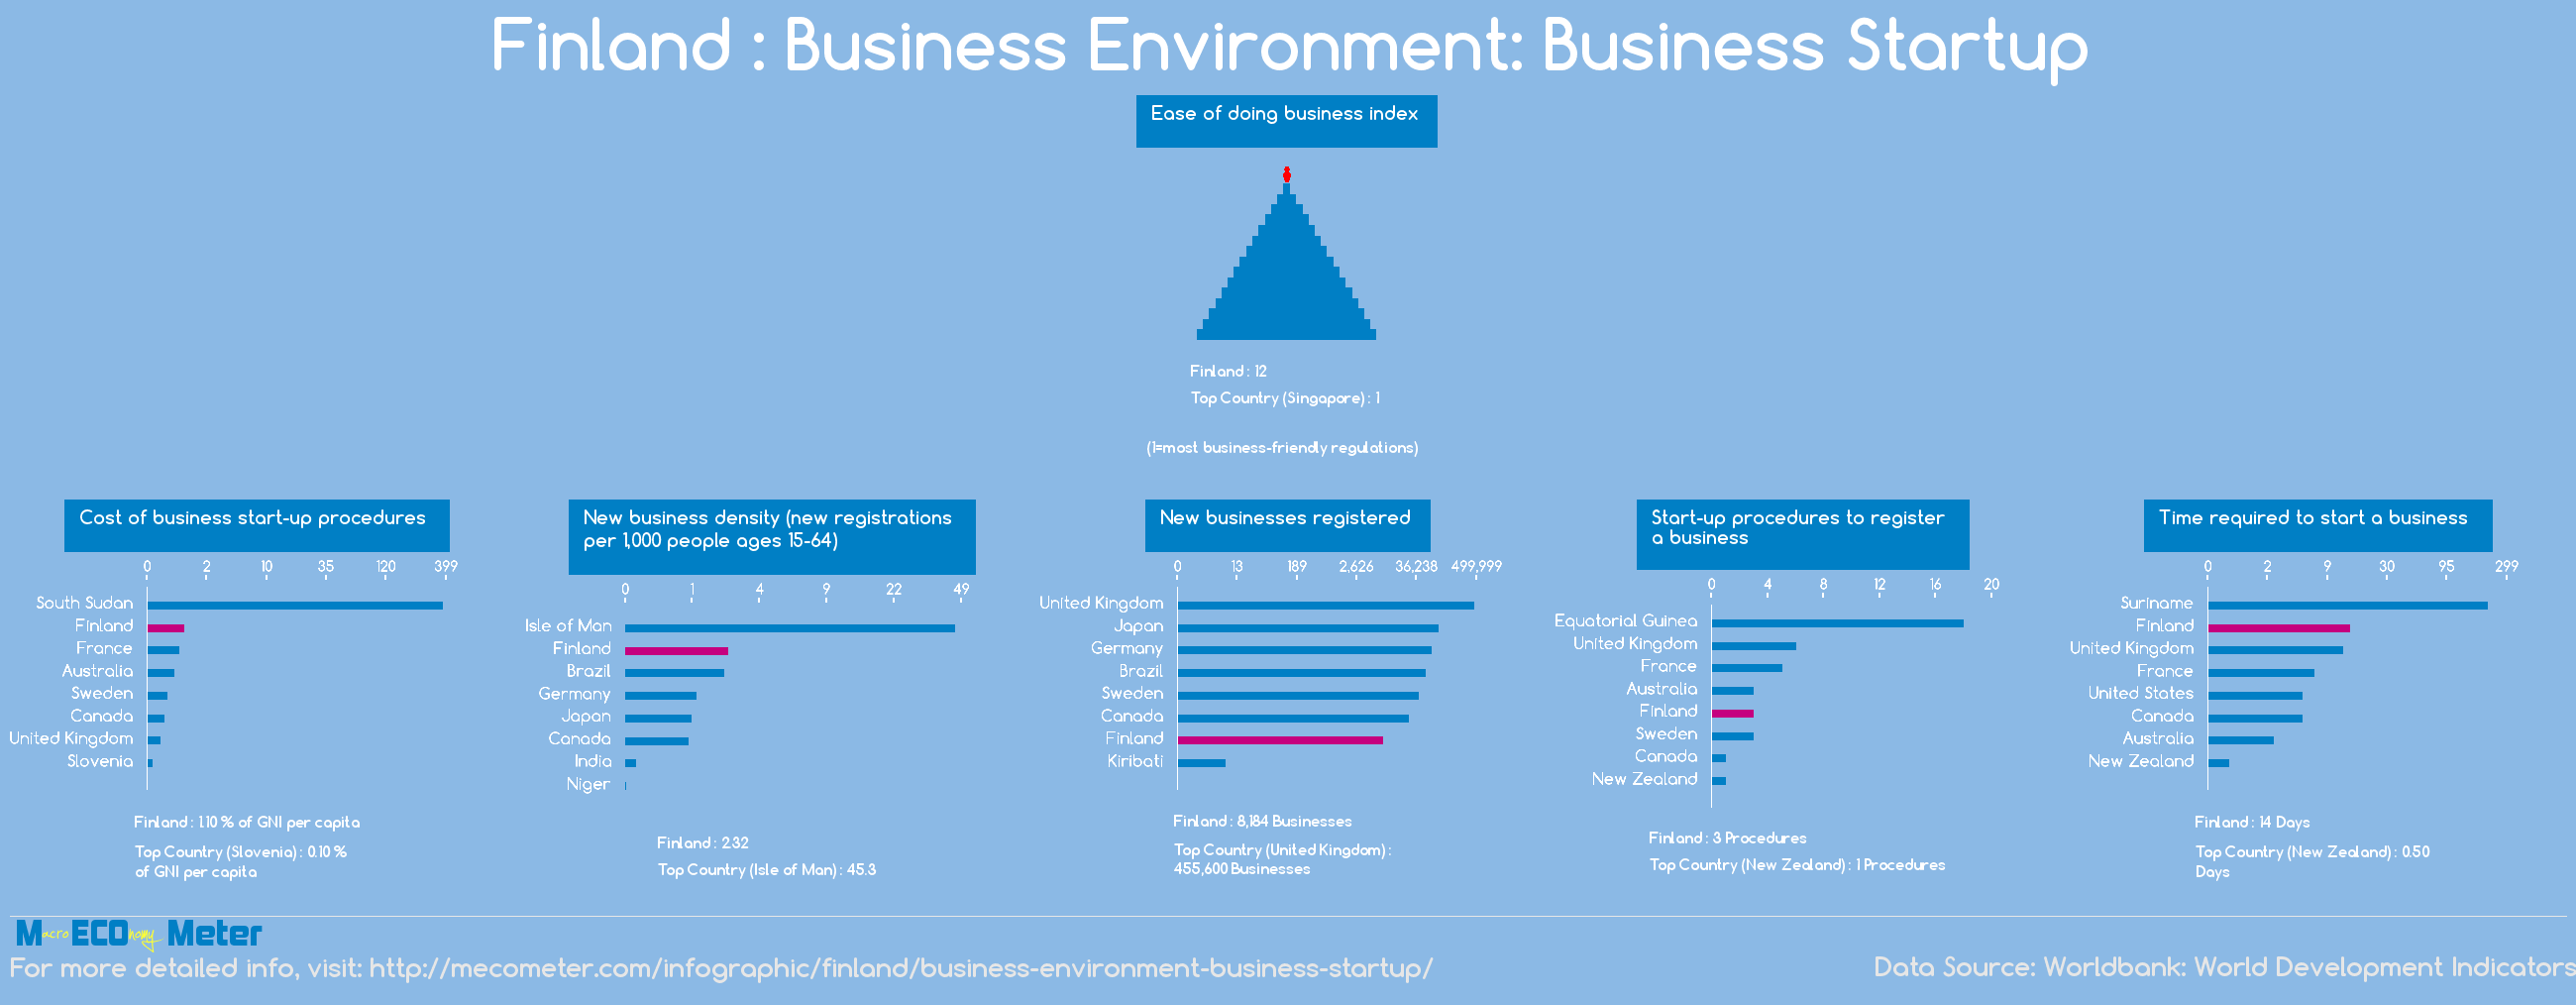 Finland : Business Environment: Business Startup